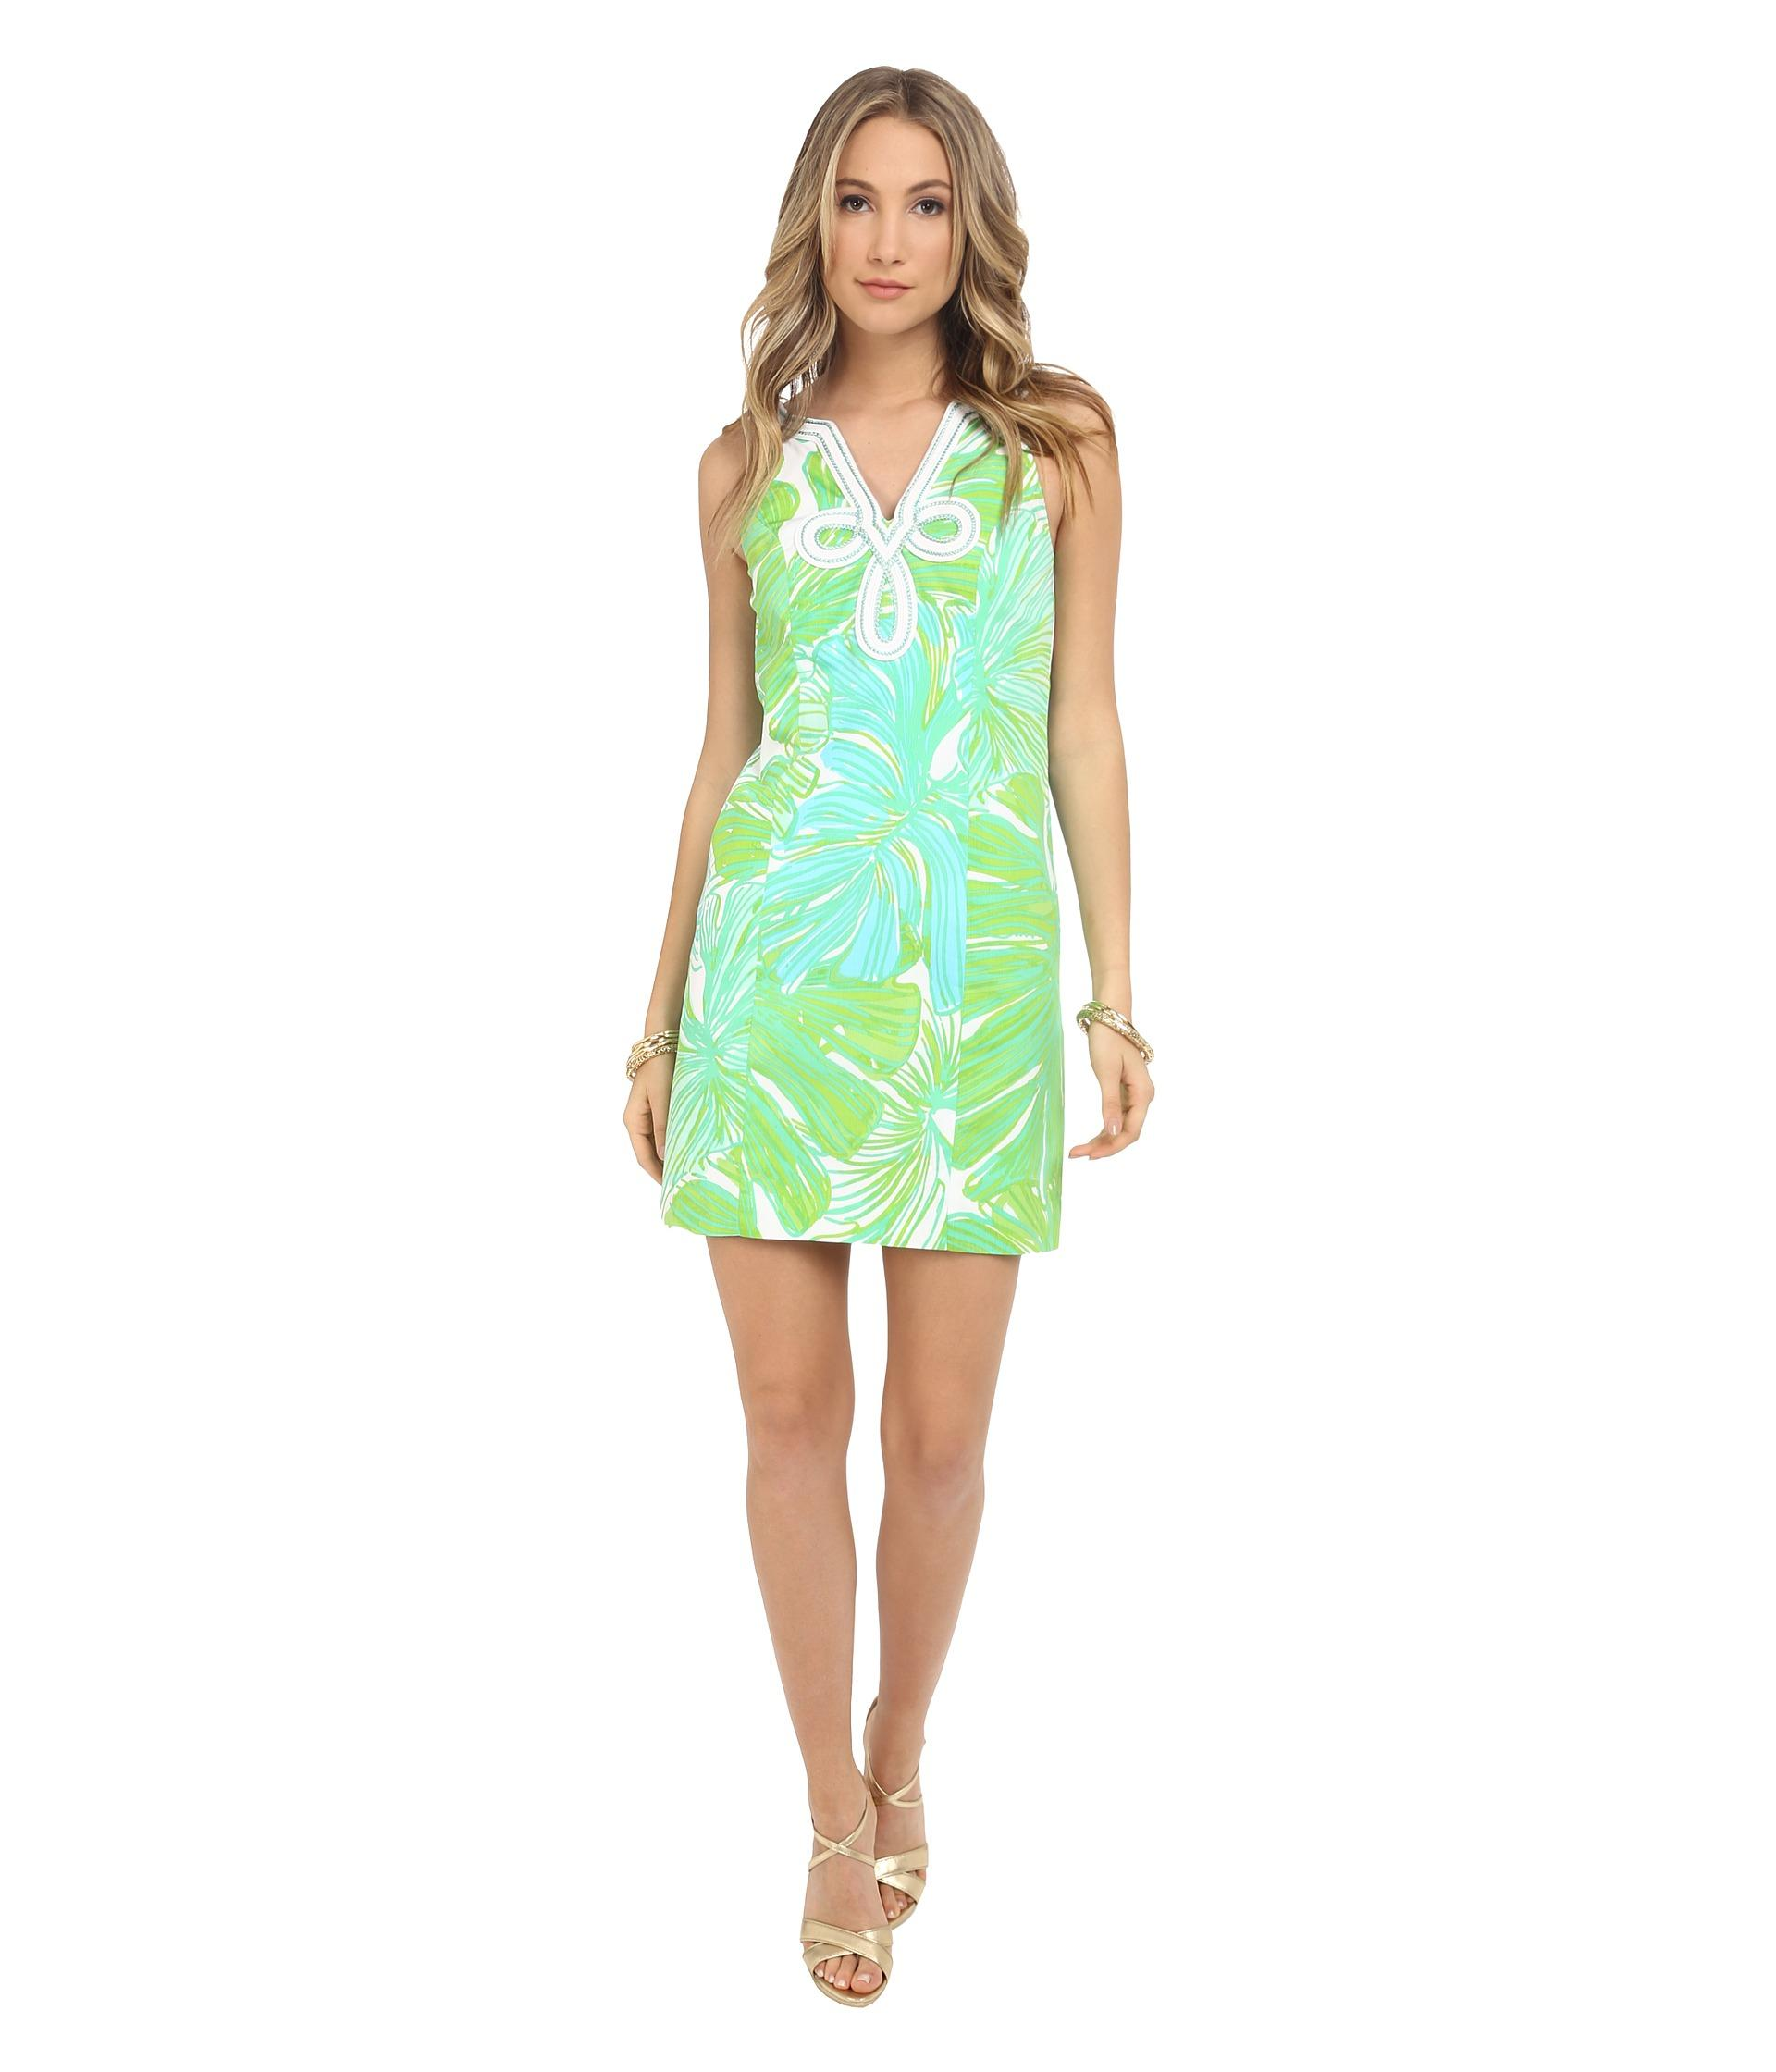 Lilly Pulitzer Dresses - Up to 80% off at Tradesy